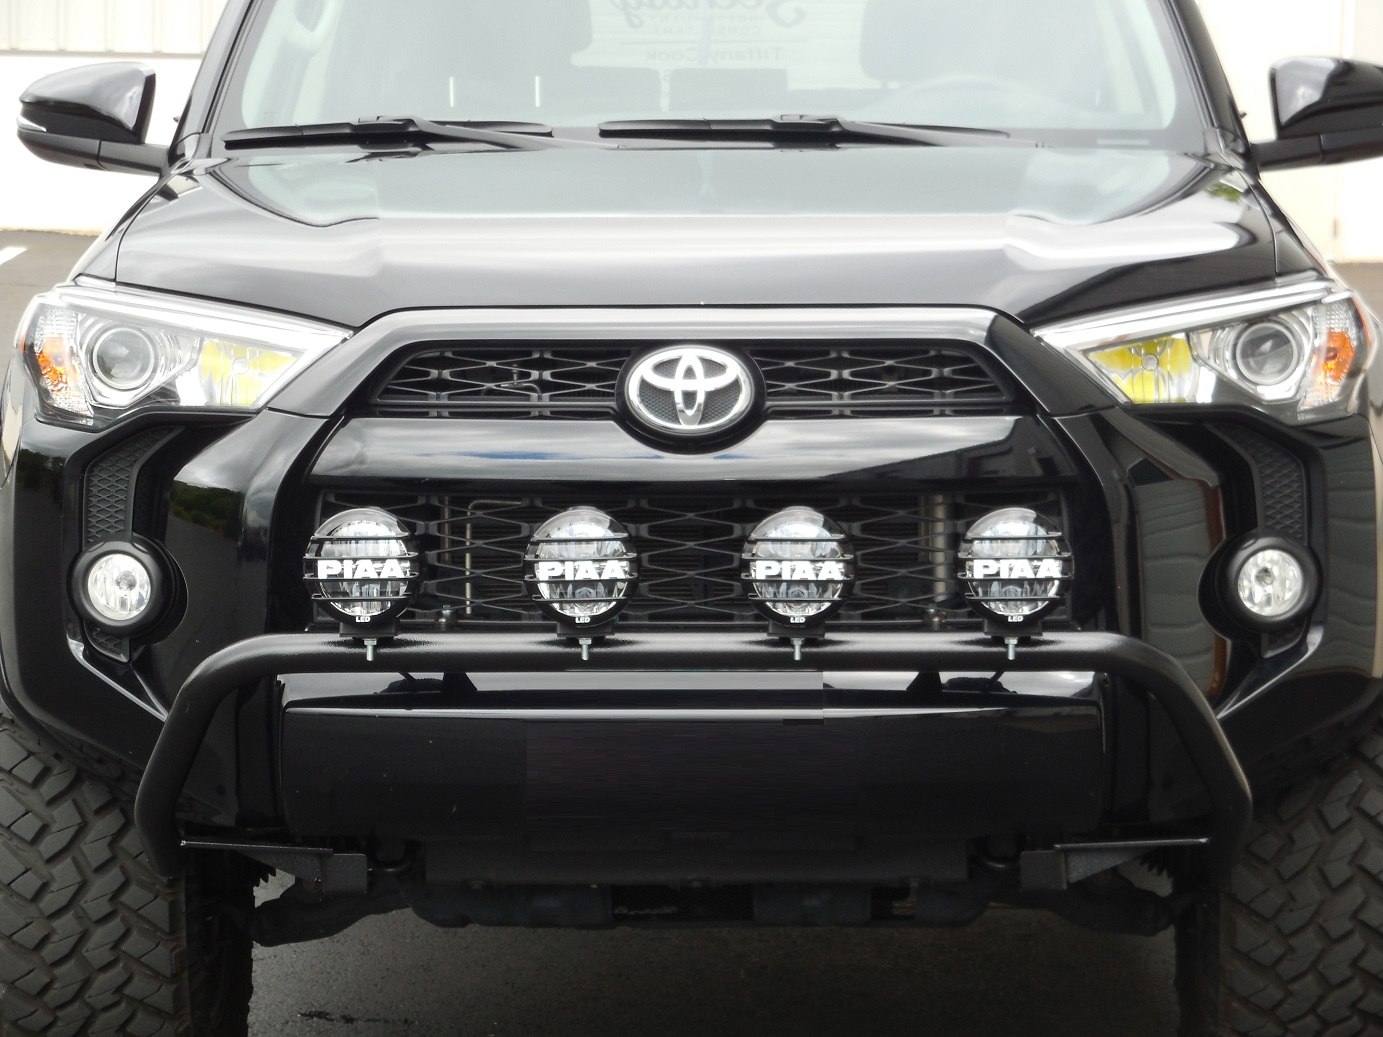 2010 2017 toyota 4runner revtek lift kits 2014 2017 toyota 2010 2017 toyota 4runner revtek lift kits 2014 2017 toyota 4runner front mount bar w led light mount by revtek suspension mozeypictures Image collections